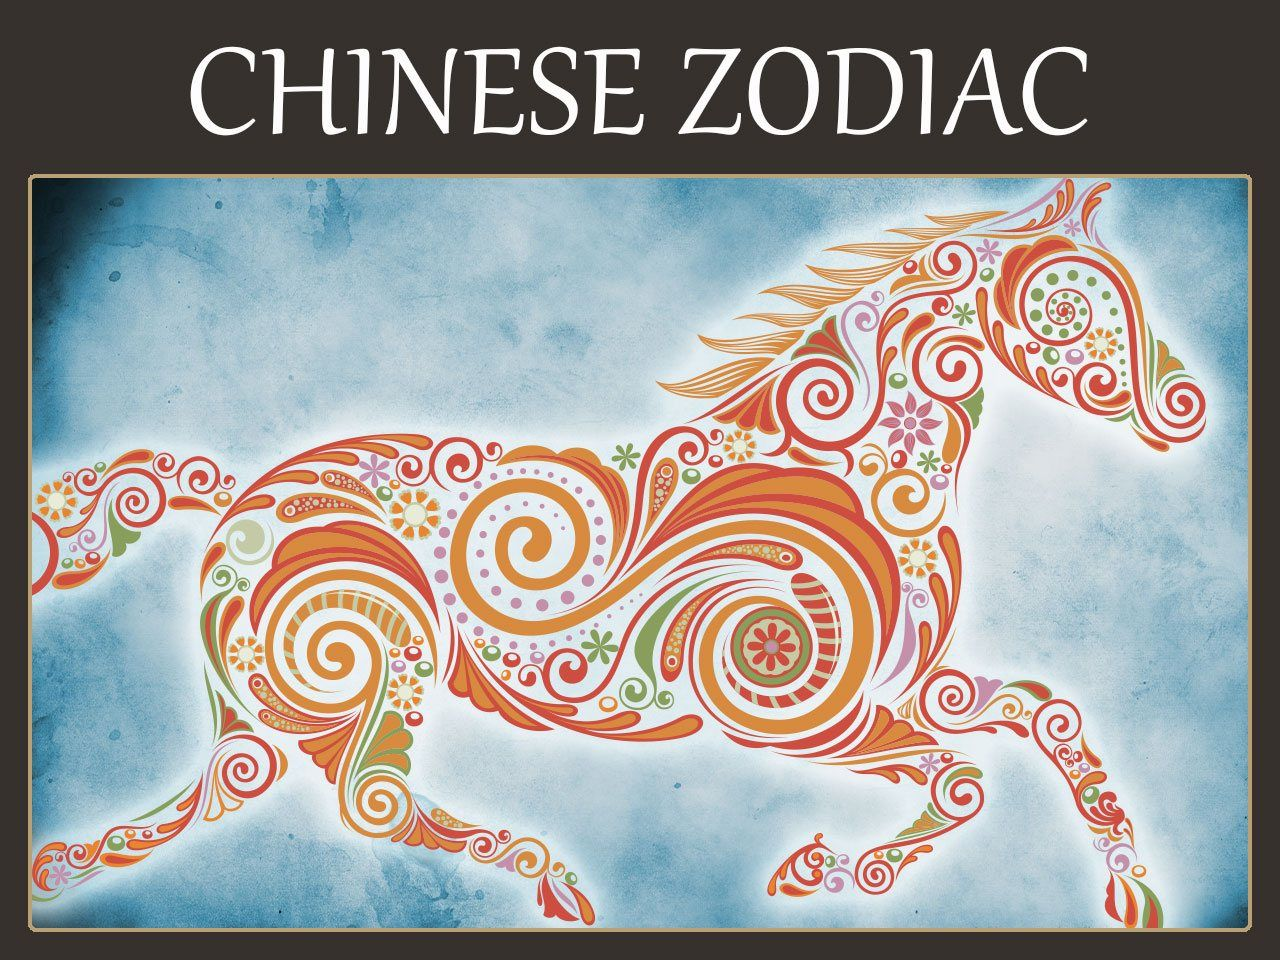 In-depth Chinese Zodiac Signs and Meanings. Learn your Chinese Zodiac Animal